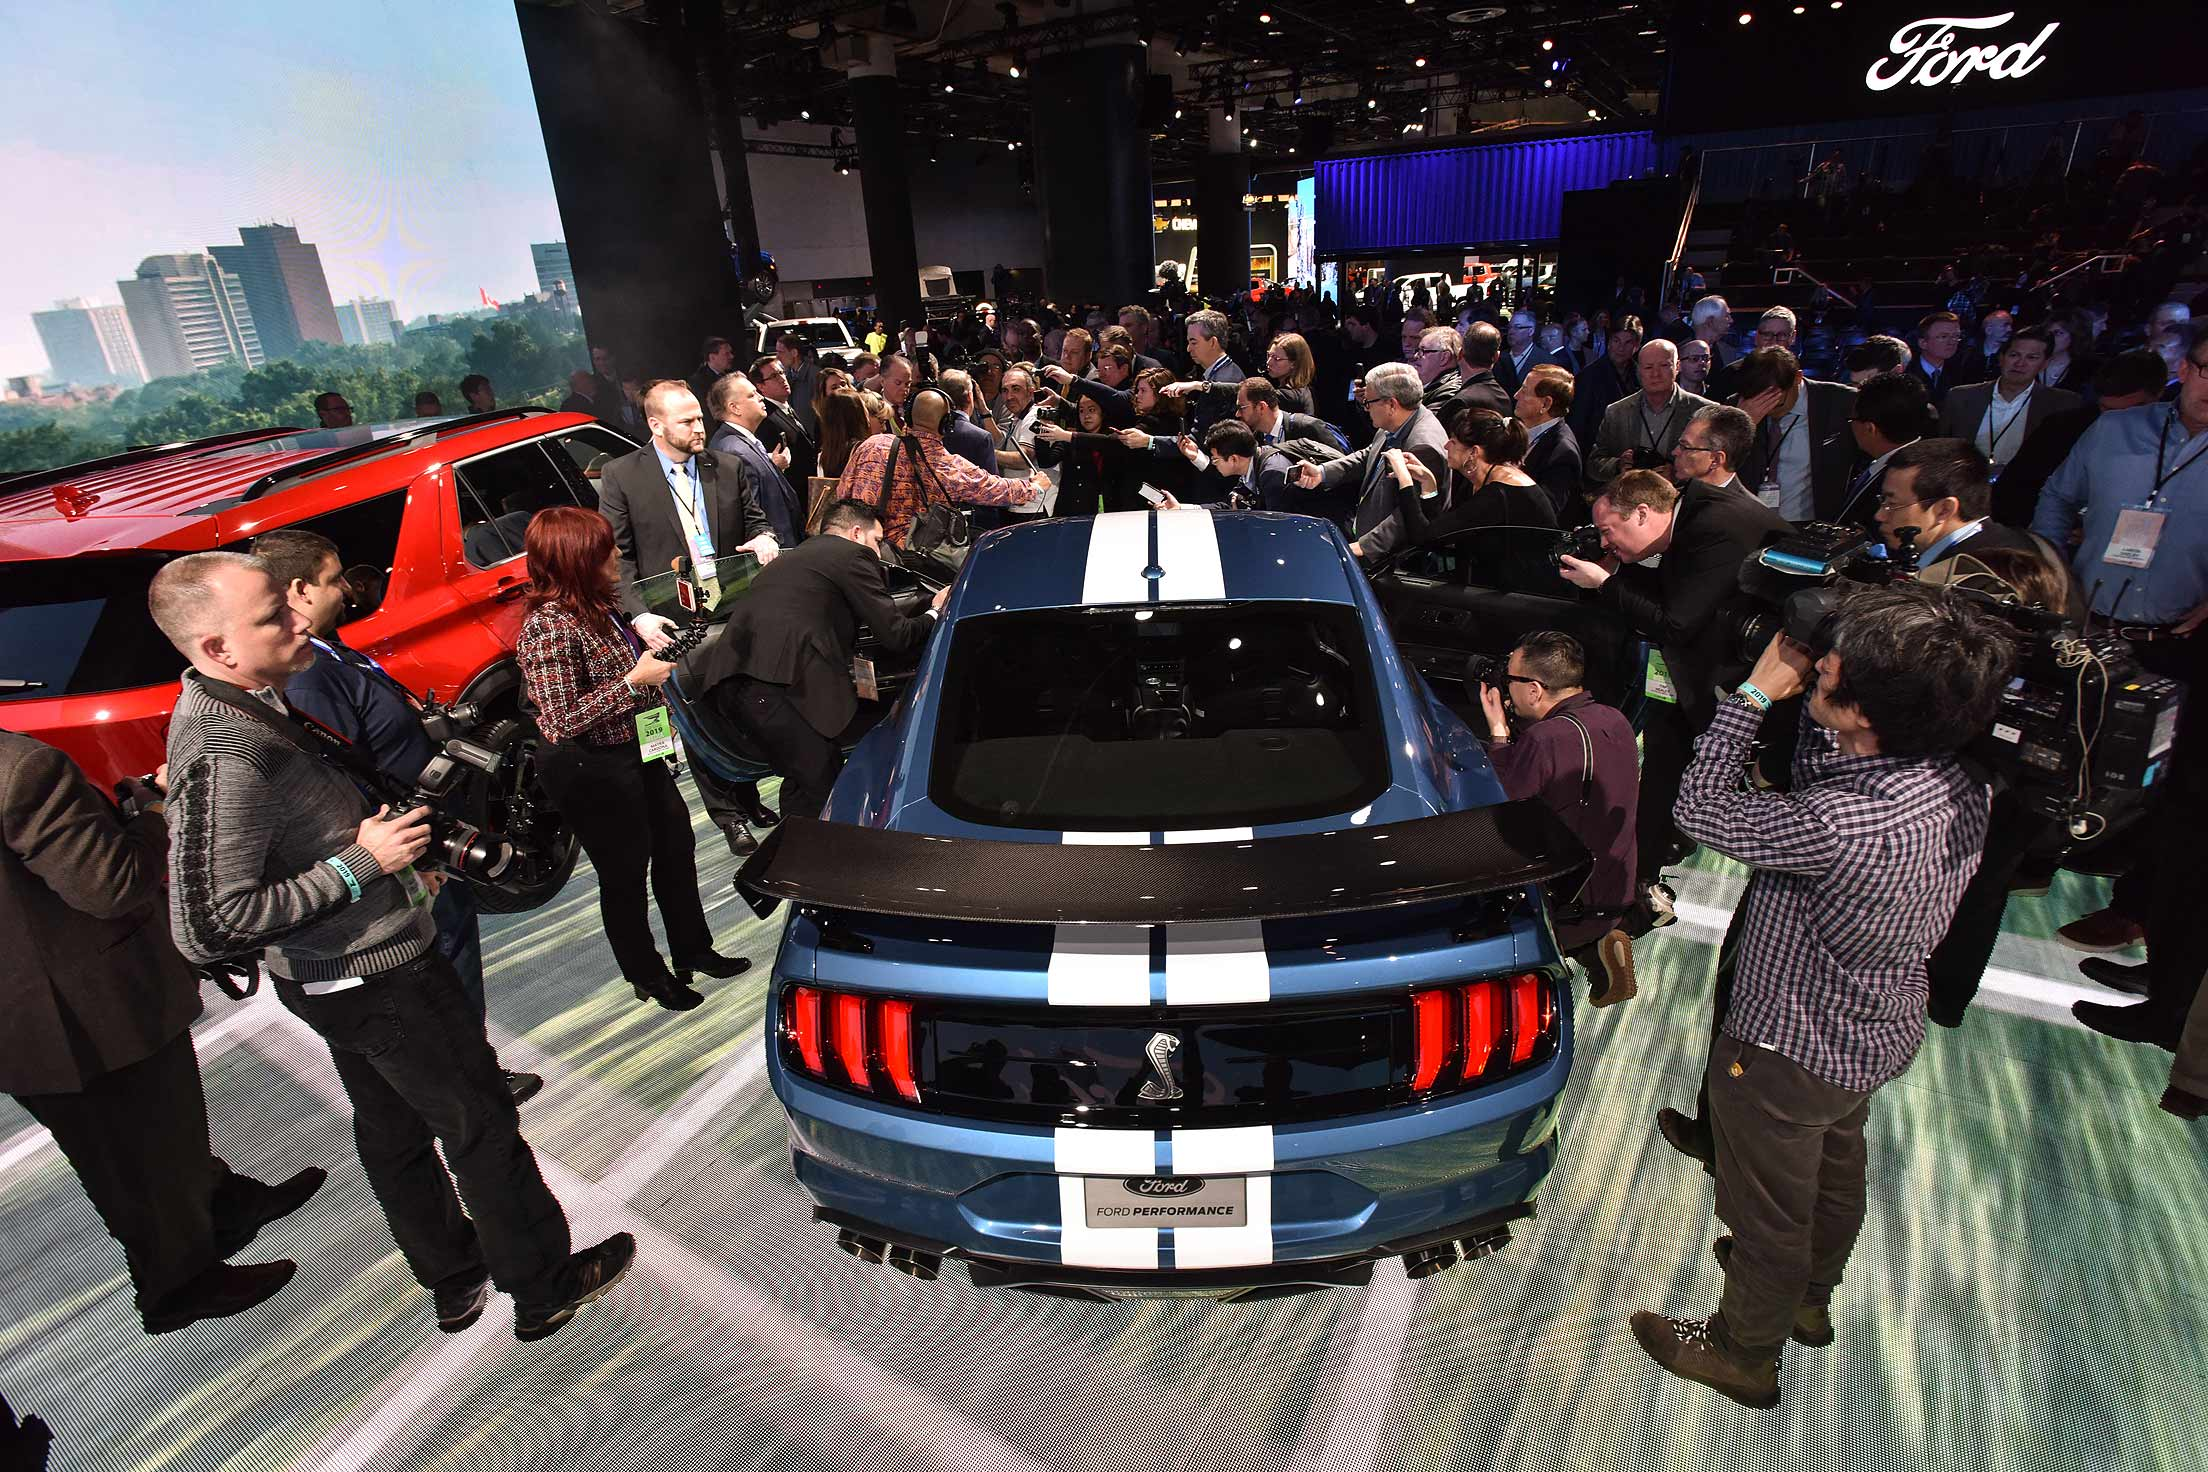 Does Ford's '20 Mustang Shelby GT500 tip scale at 4,225 pounds?